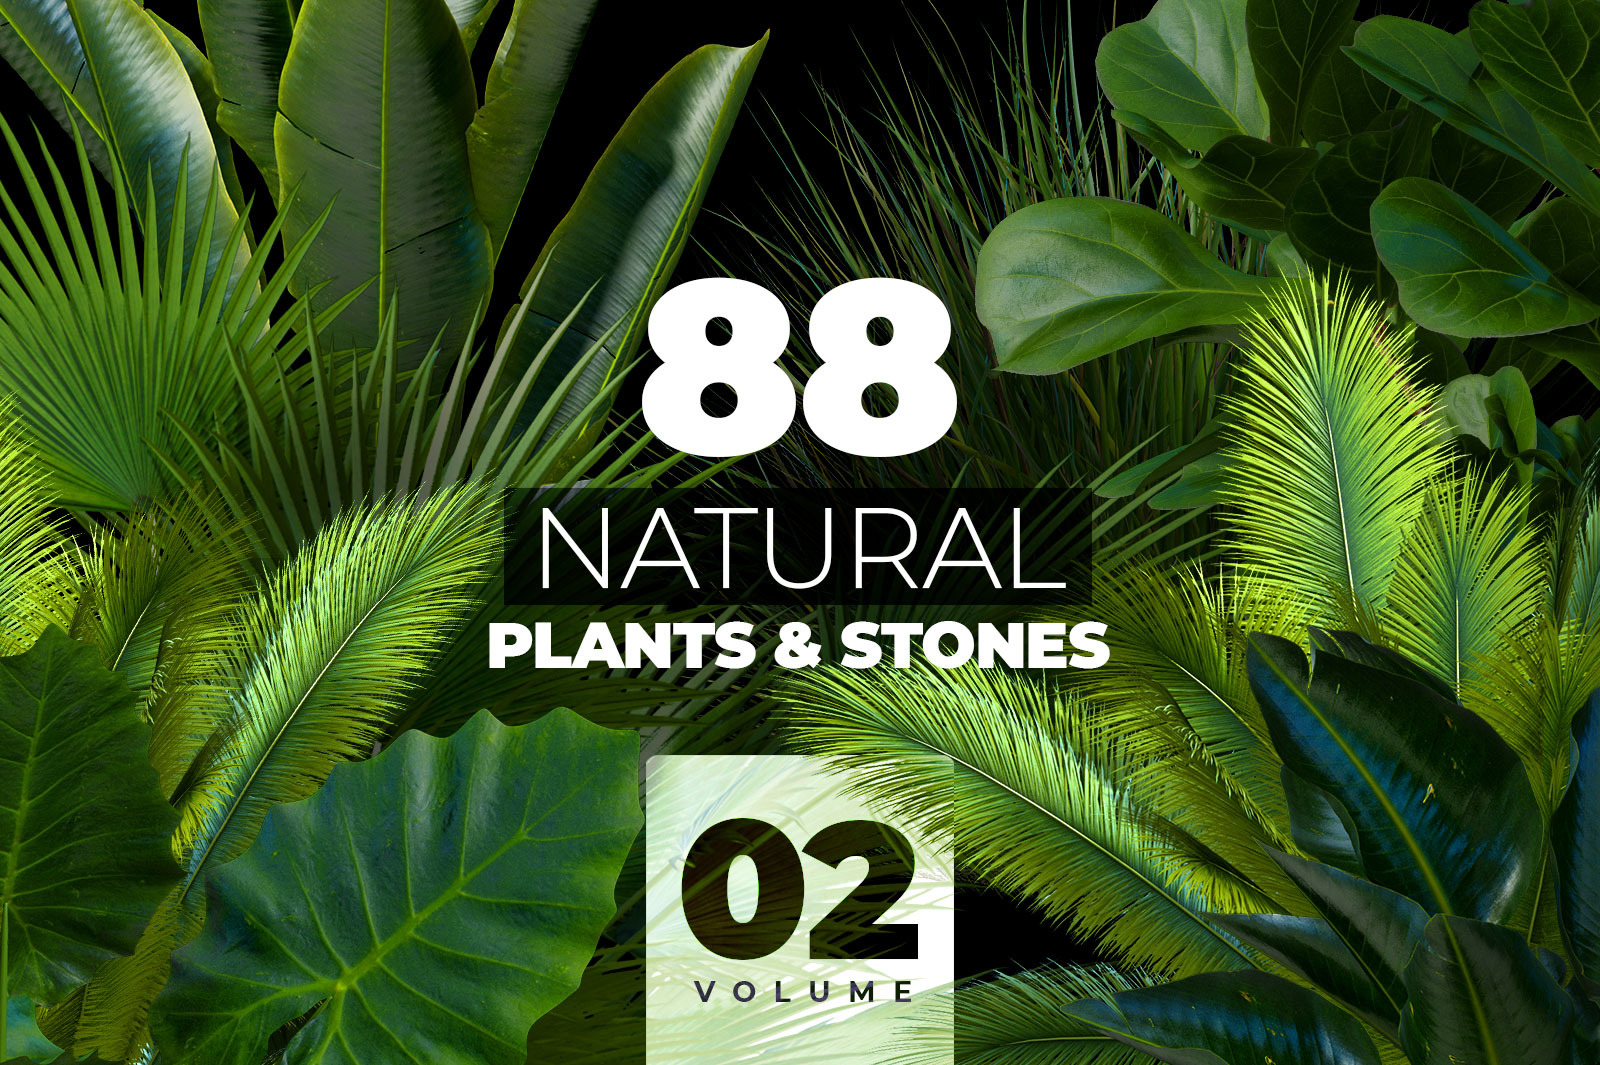 NATURAL plants & stones collection #02